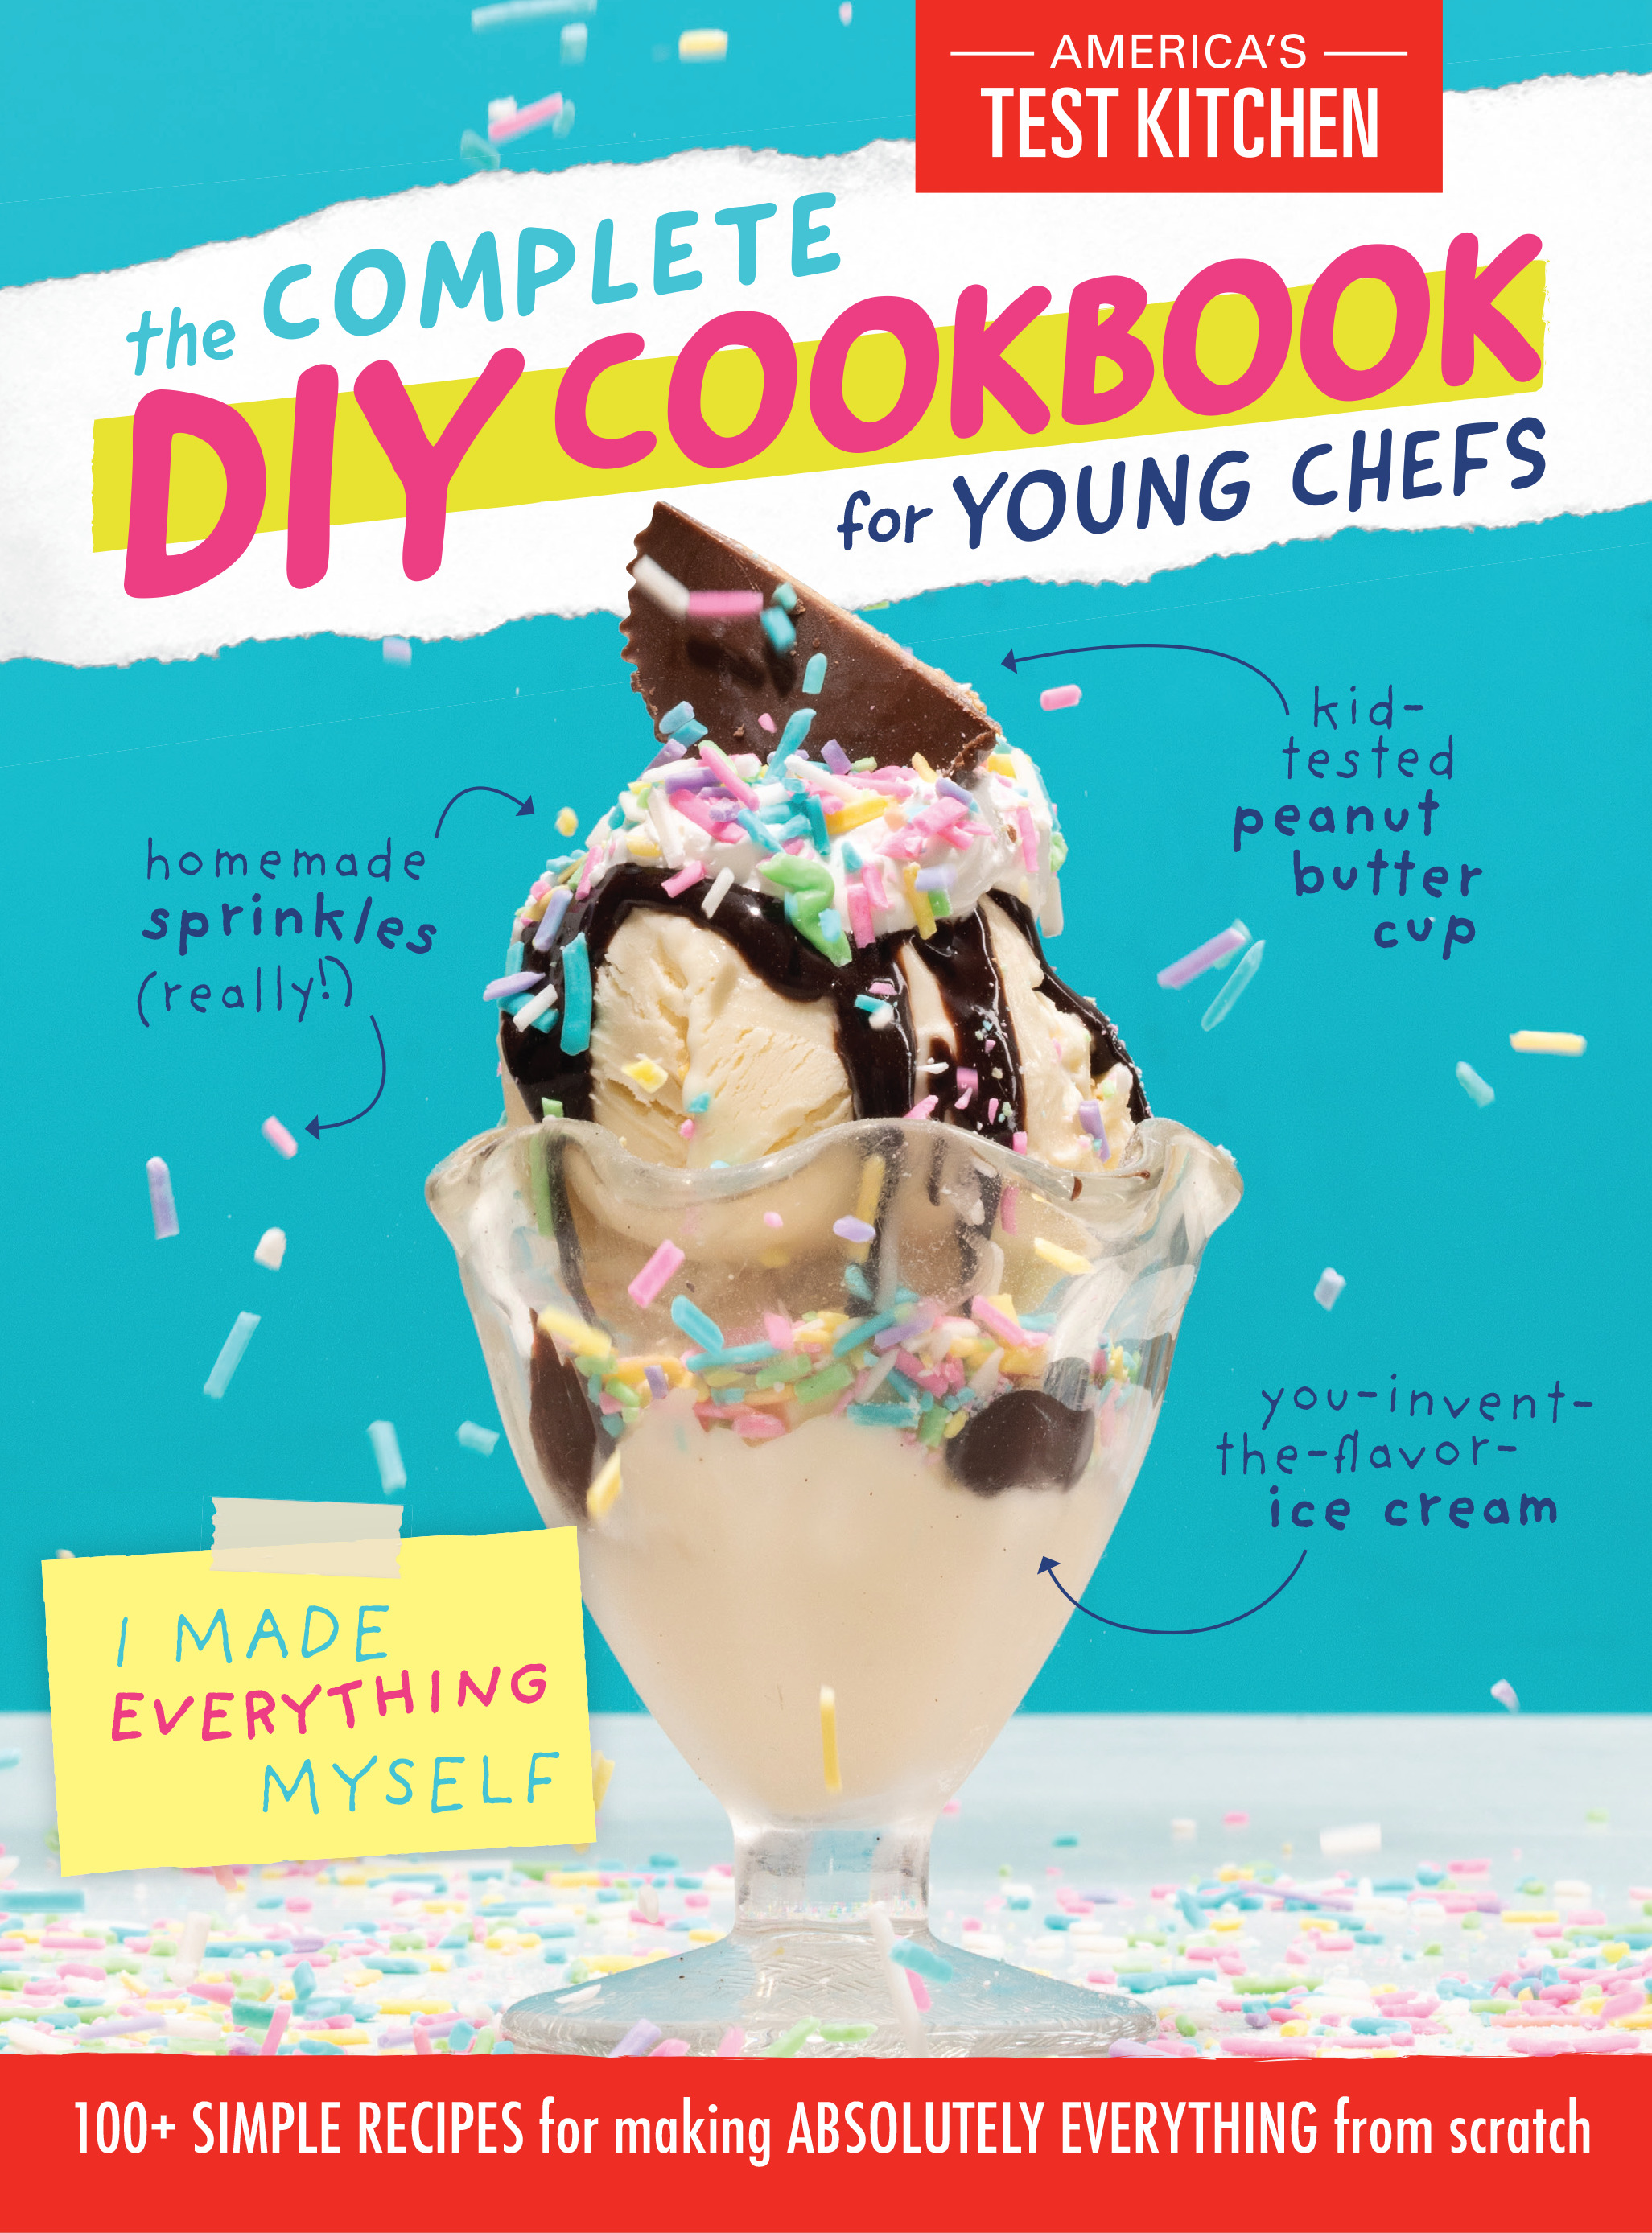 The Complete DIY Cookbook for Young Chefs : 100+ Simple Recipes for Making Absolutely Everything from Scratch | Cookbook